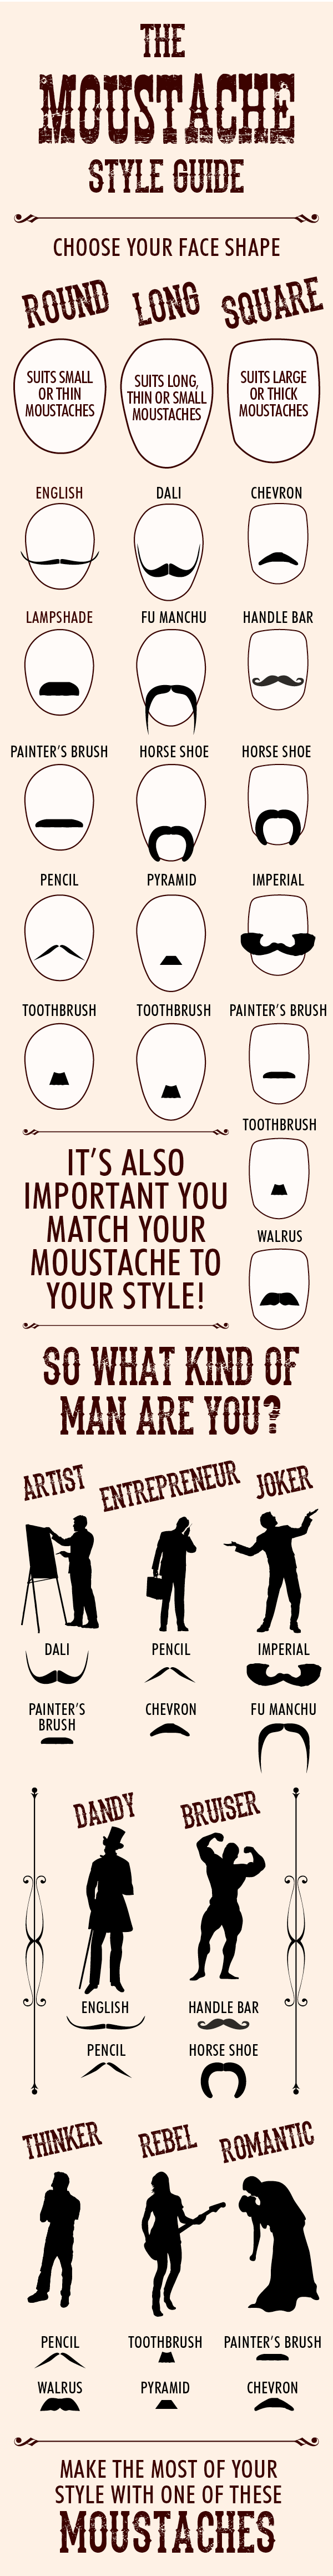 Moustache Styles Guide - Salons Direct